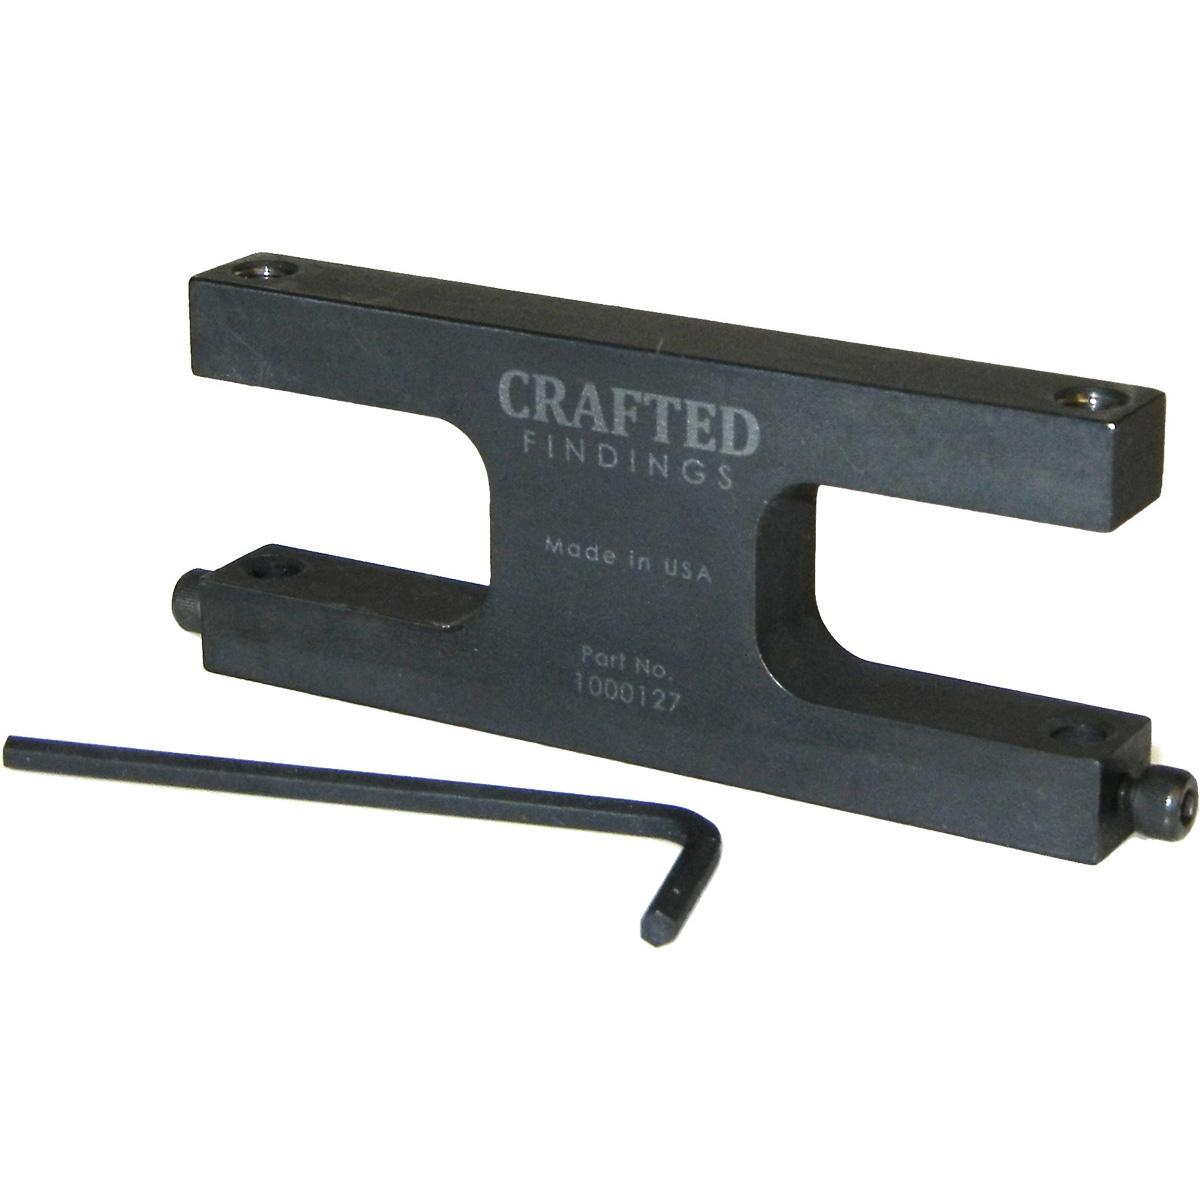 Crafted Findings Standard Riveting System